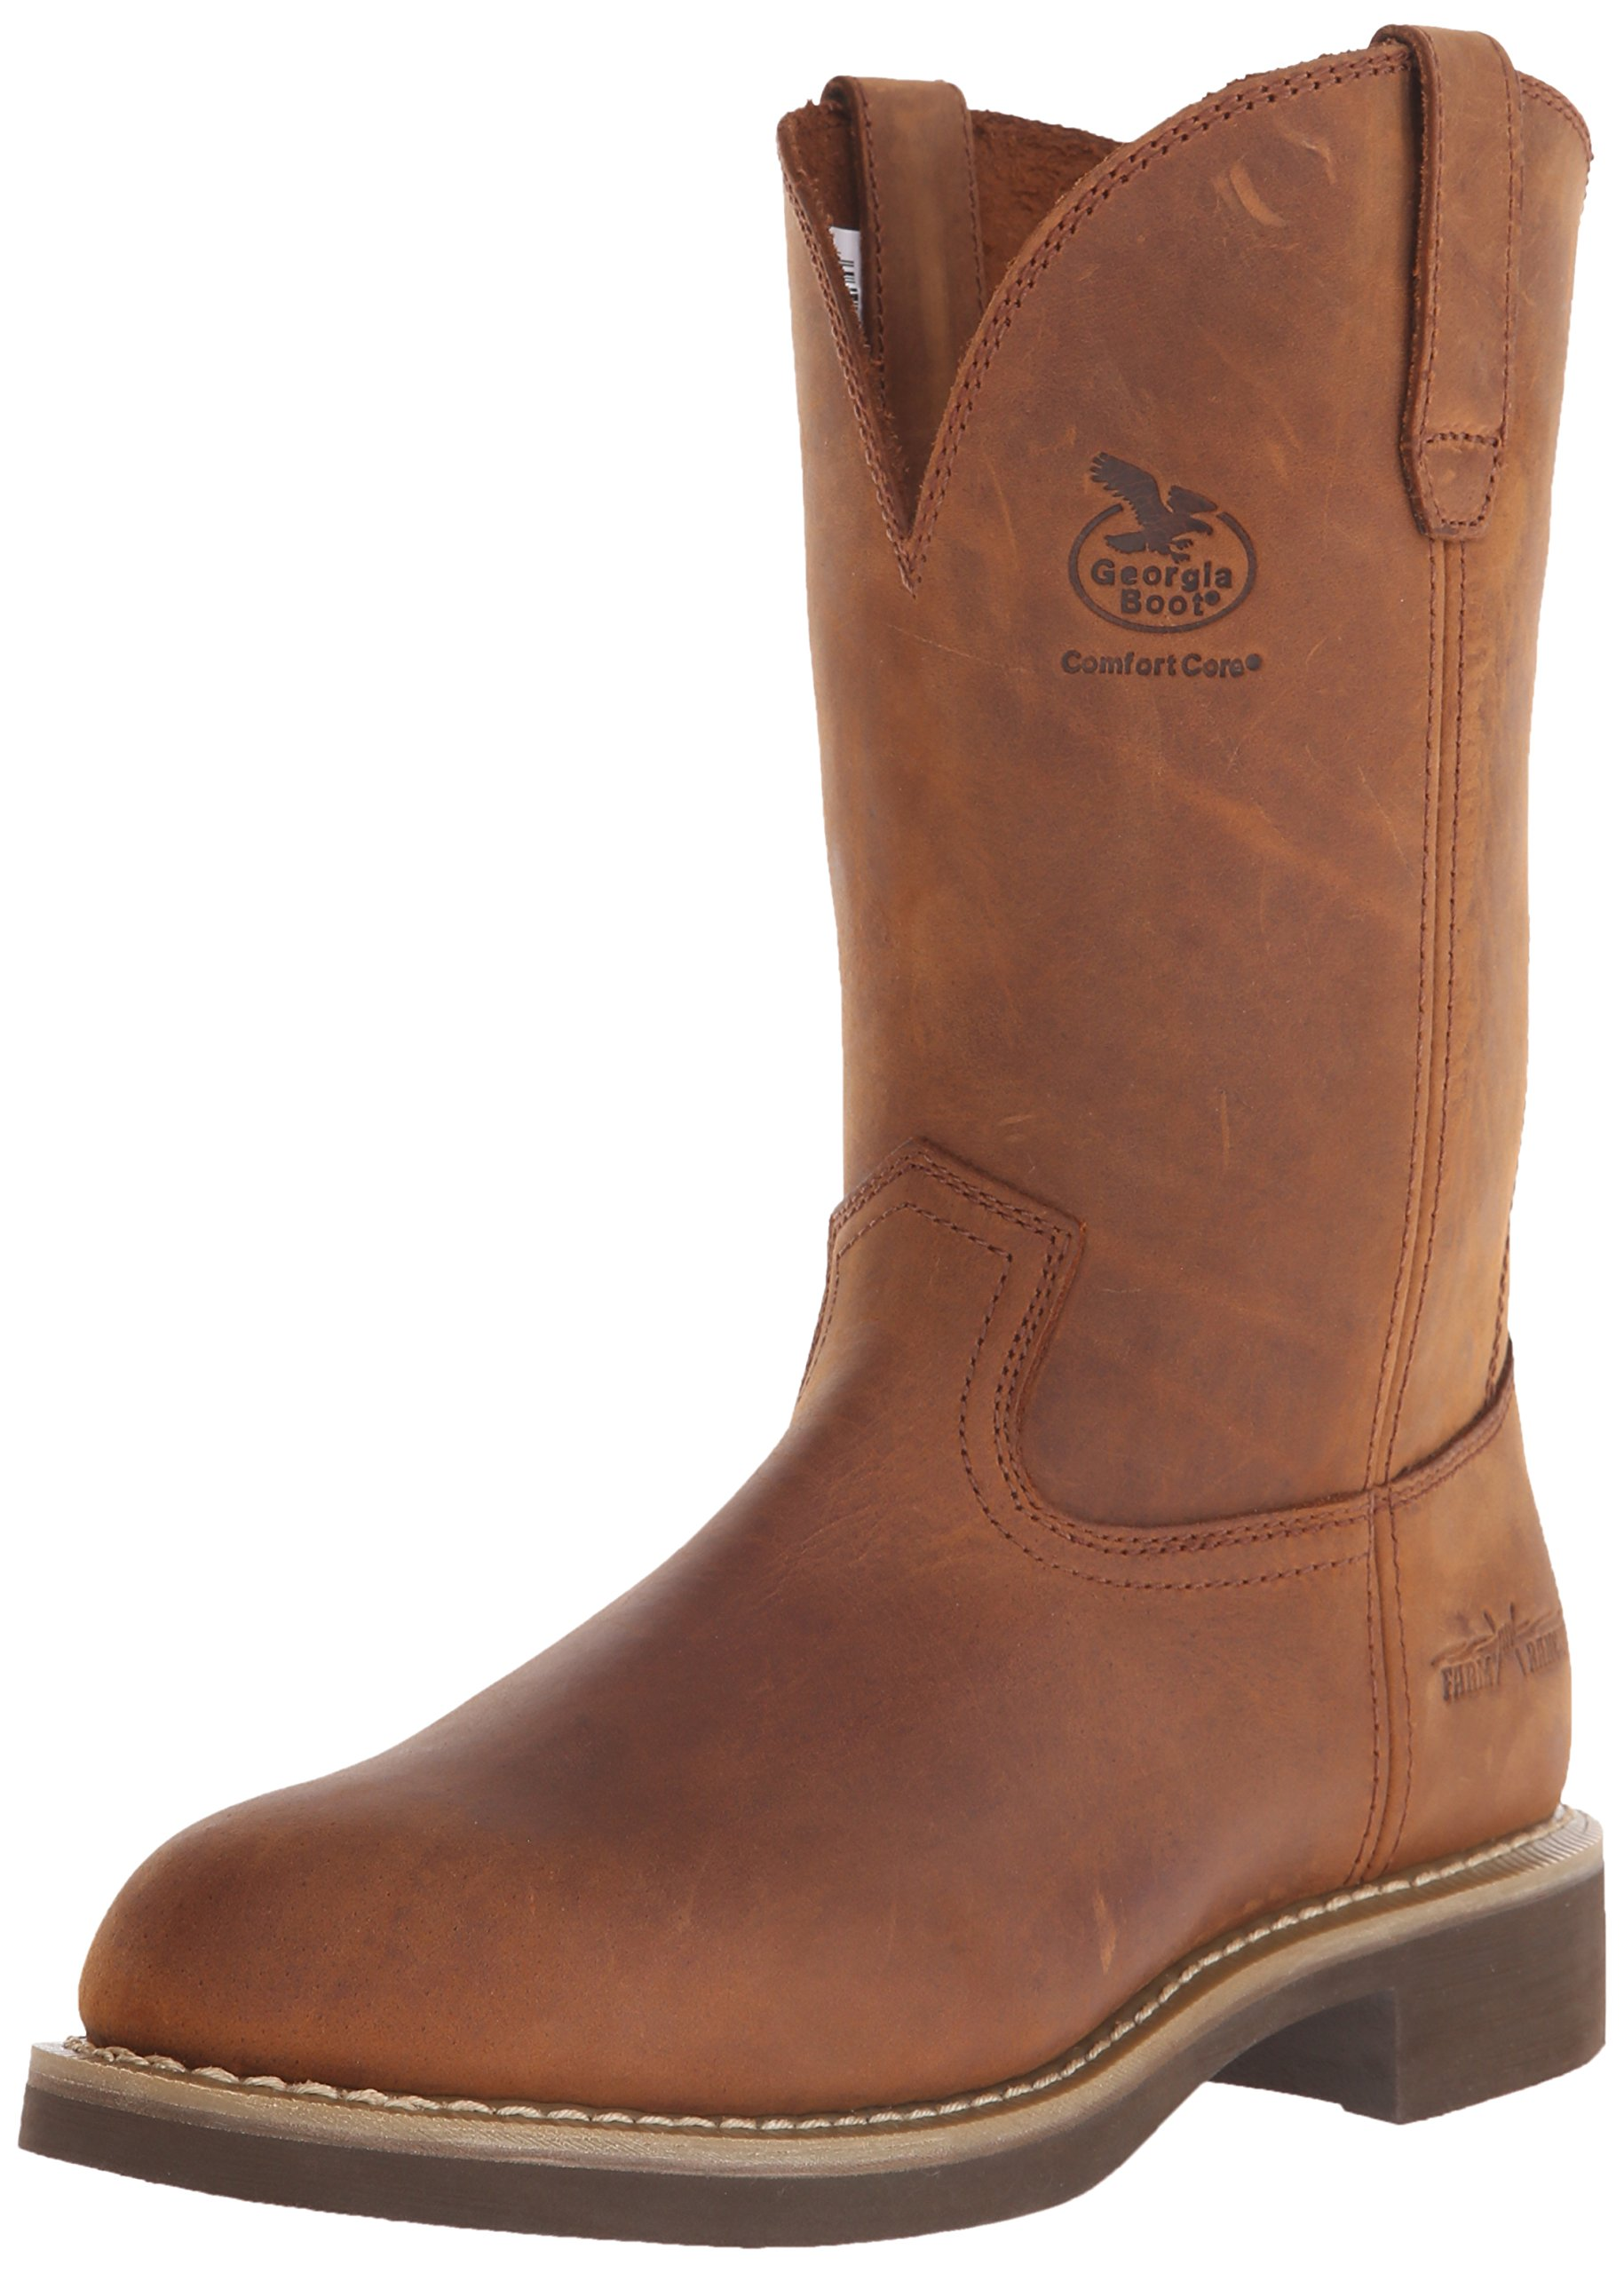 Georgia Men's Carbo Tec-M Farm and Ranch, Prairie Chestnut, 11 2E US by Georgia